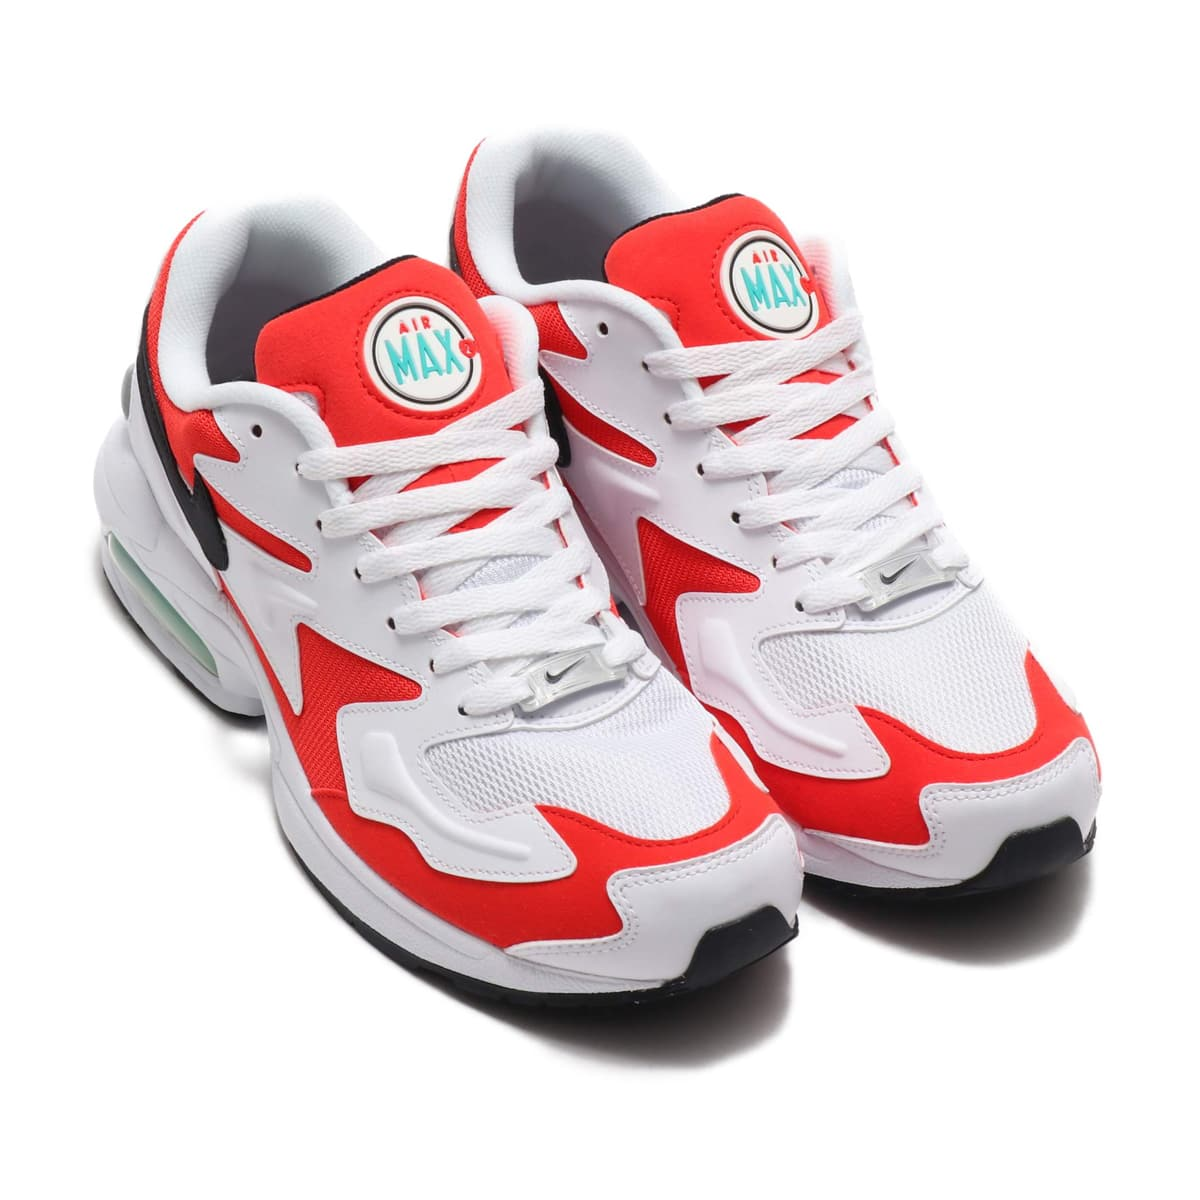 NIKE AIR MAX2 LIGHT WHITE/BLACK-HBNR RED-CL GRY 19SU-S_photo_large